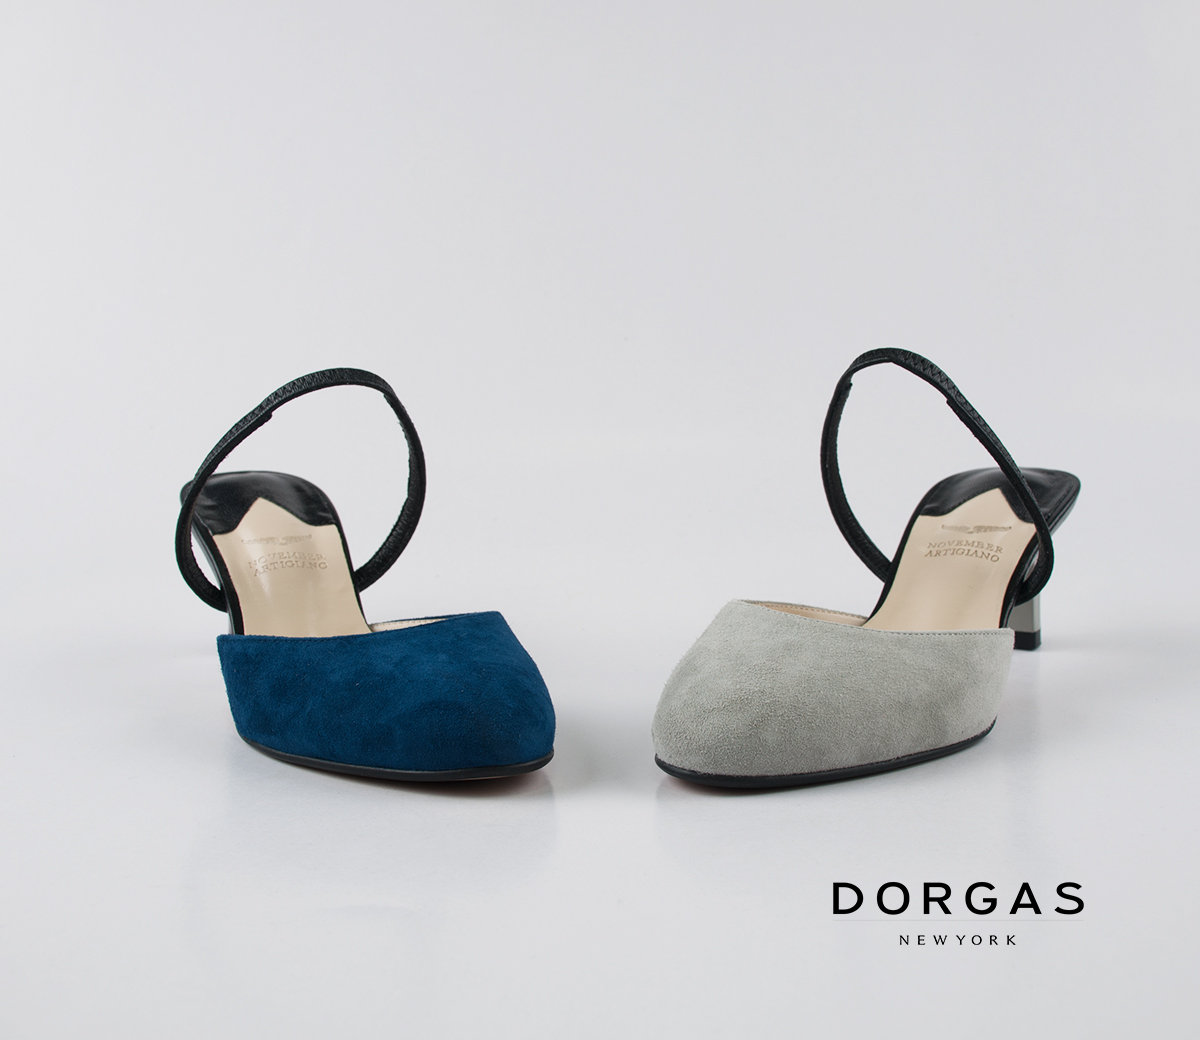 DN301 Shoes